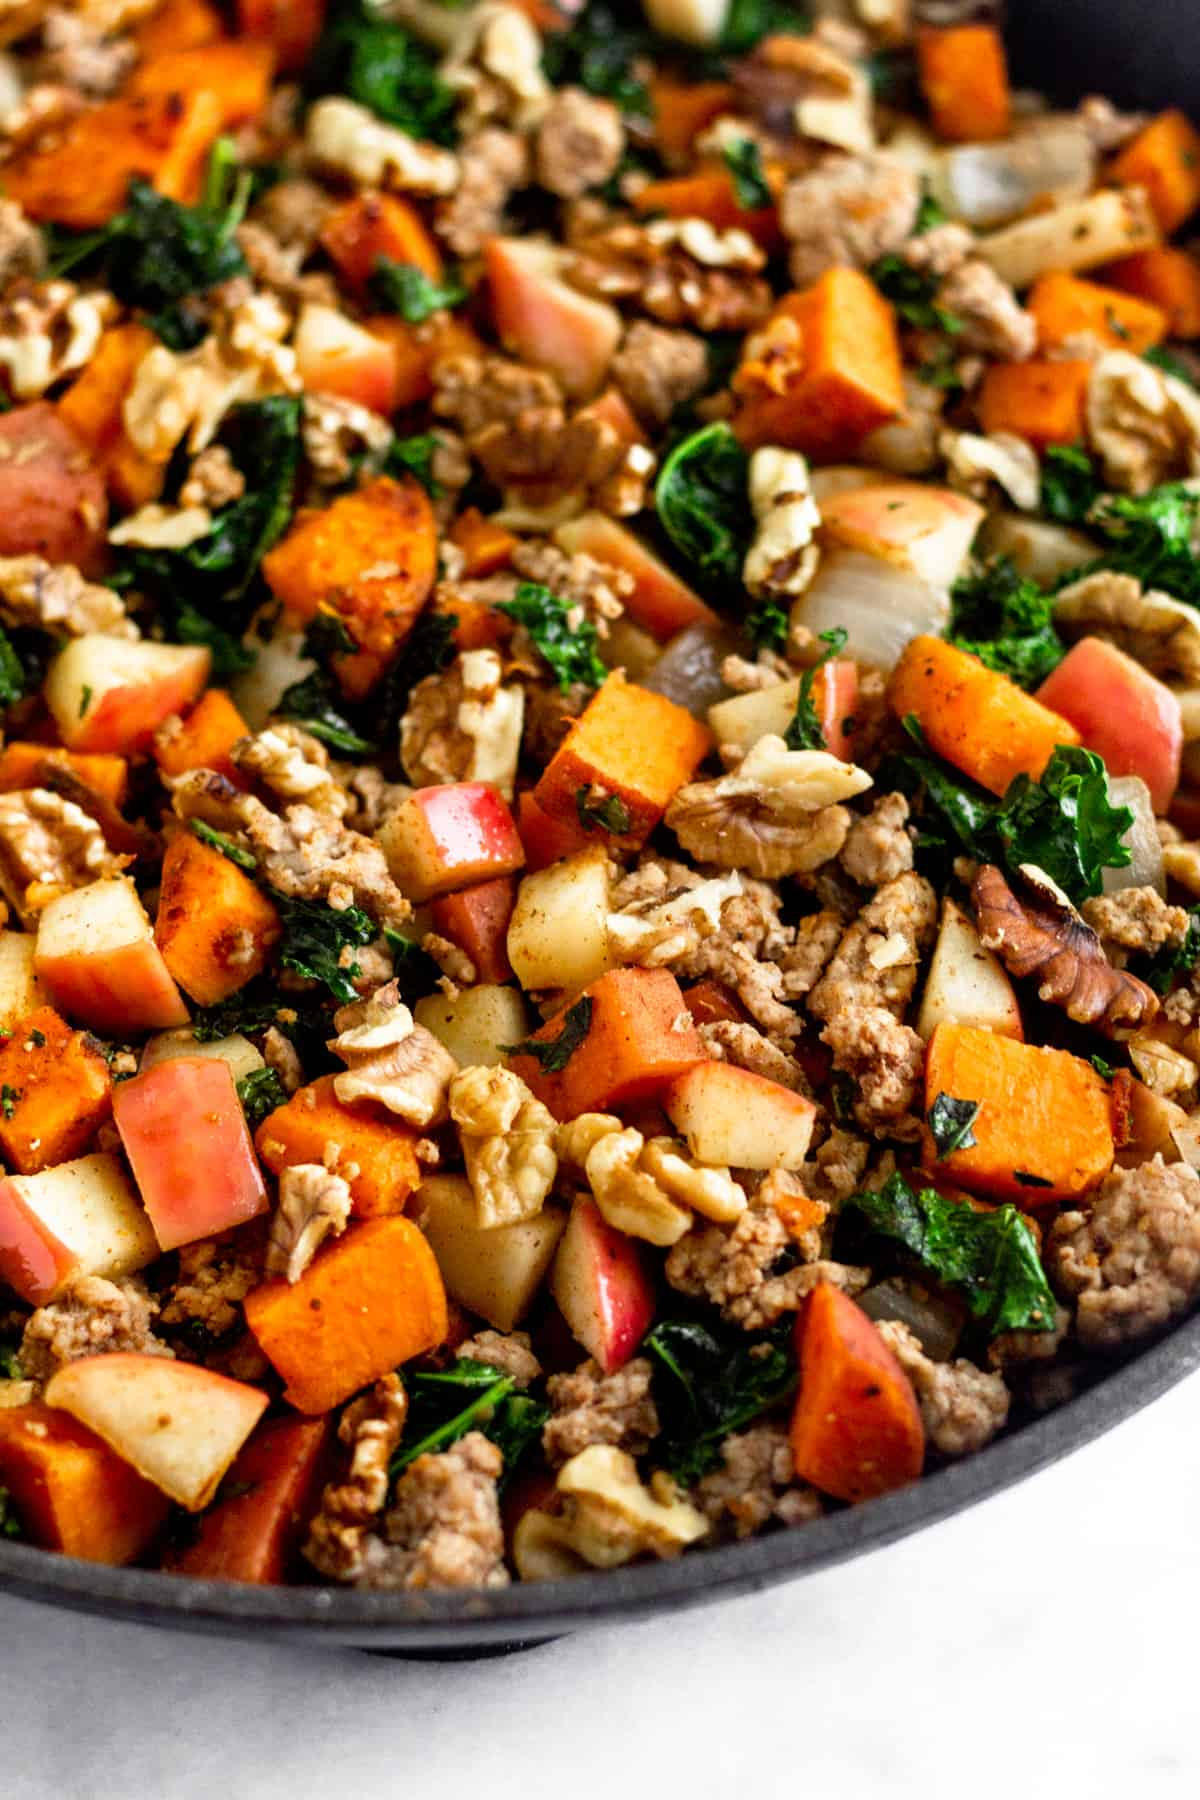 Close up of a large saute pan of of ground pork, sweet potatoes, kale, apples, and walnuts.